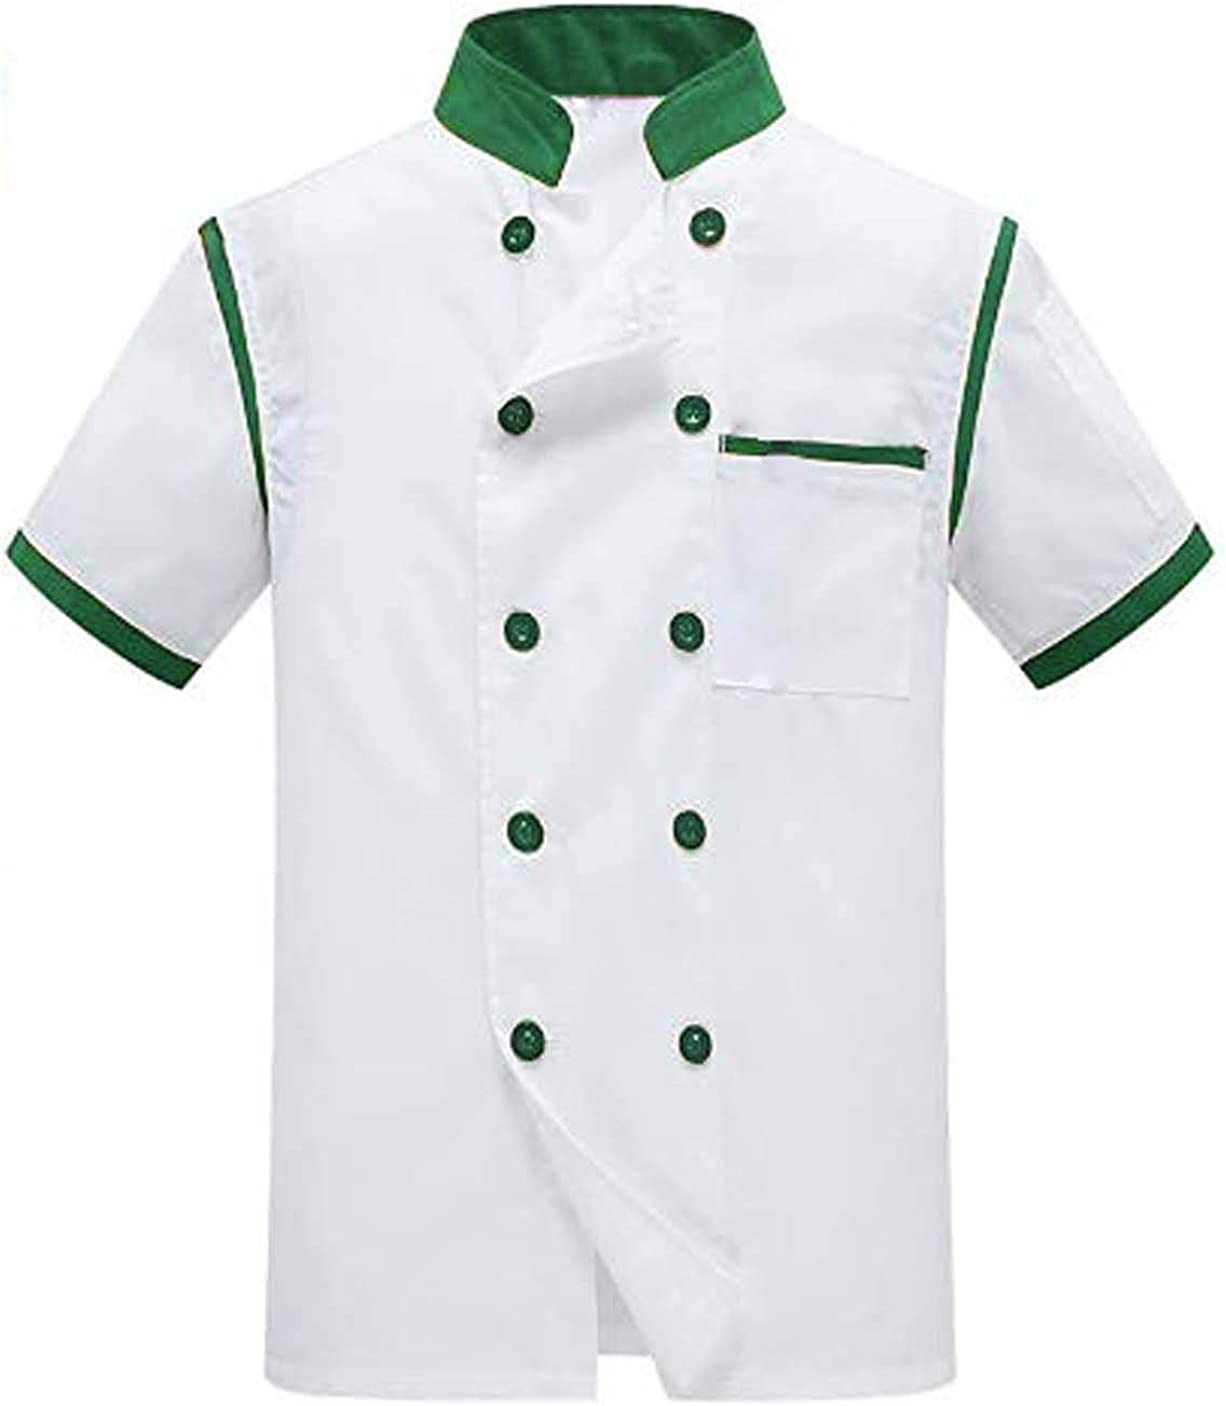 Ranking Free shipping anywhere in the nation TOP7 Primebail Several Design Kitchen Uniform Light Chef Weight Jacke